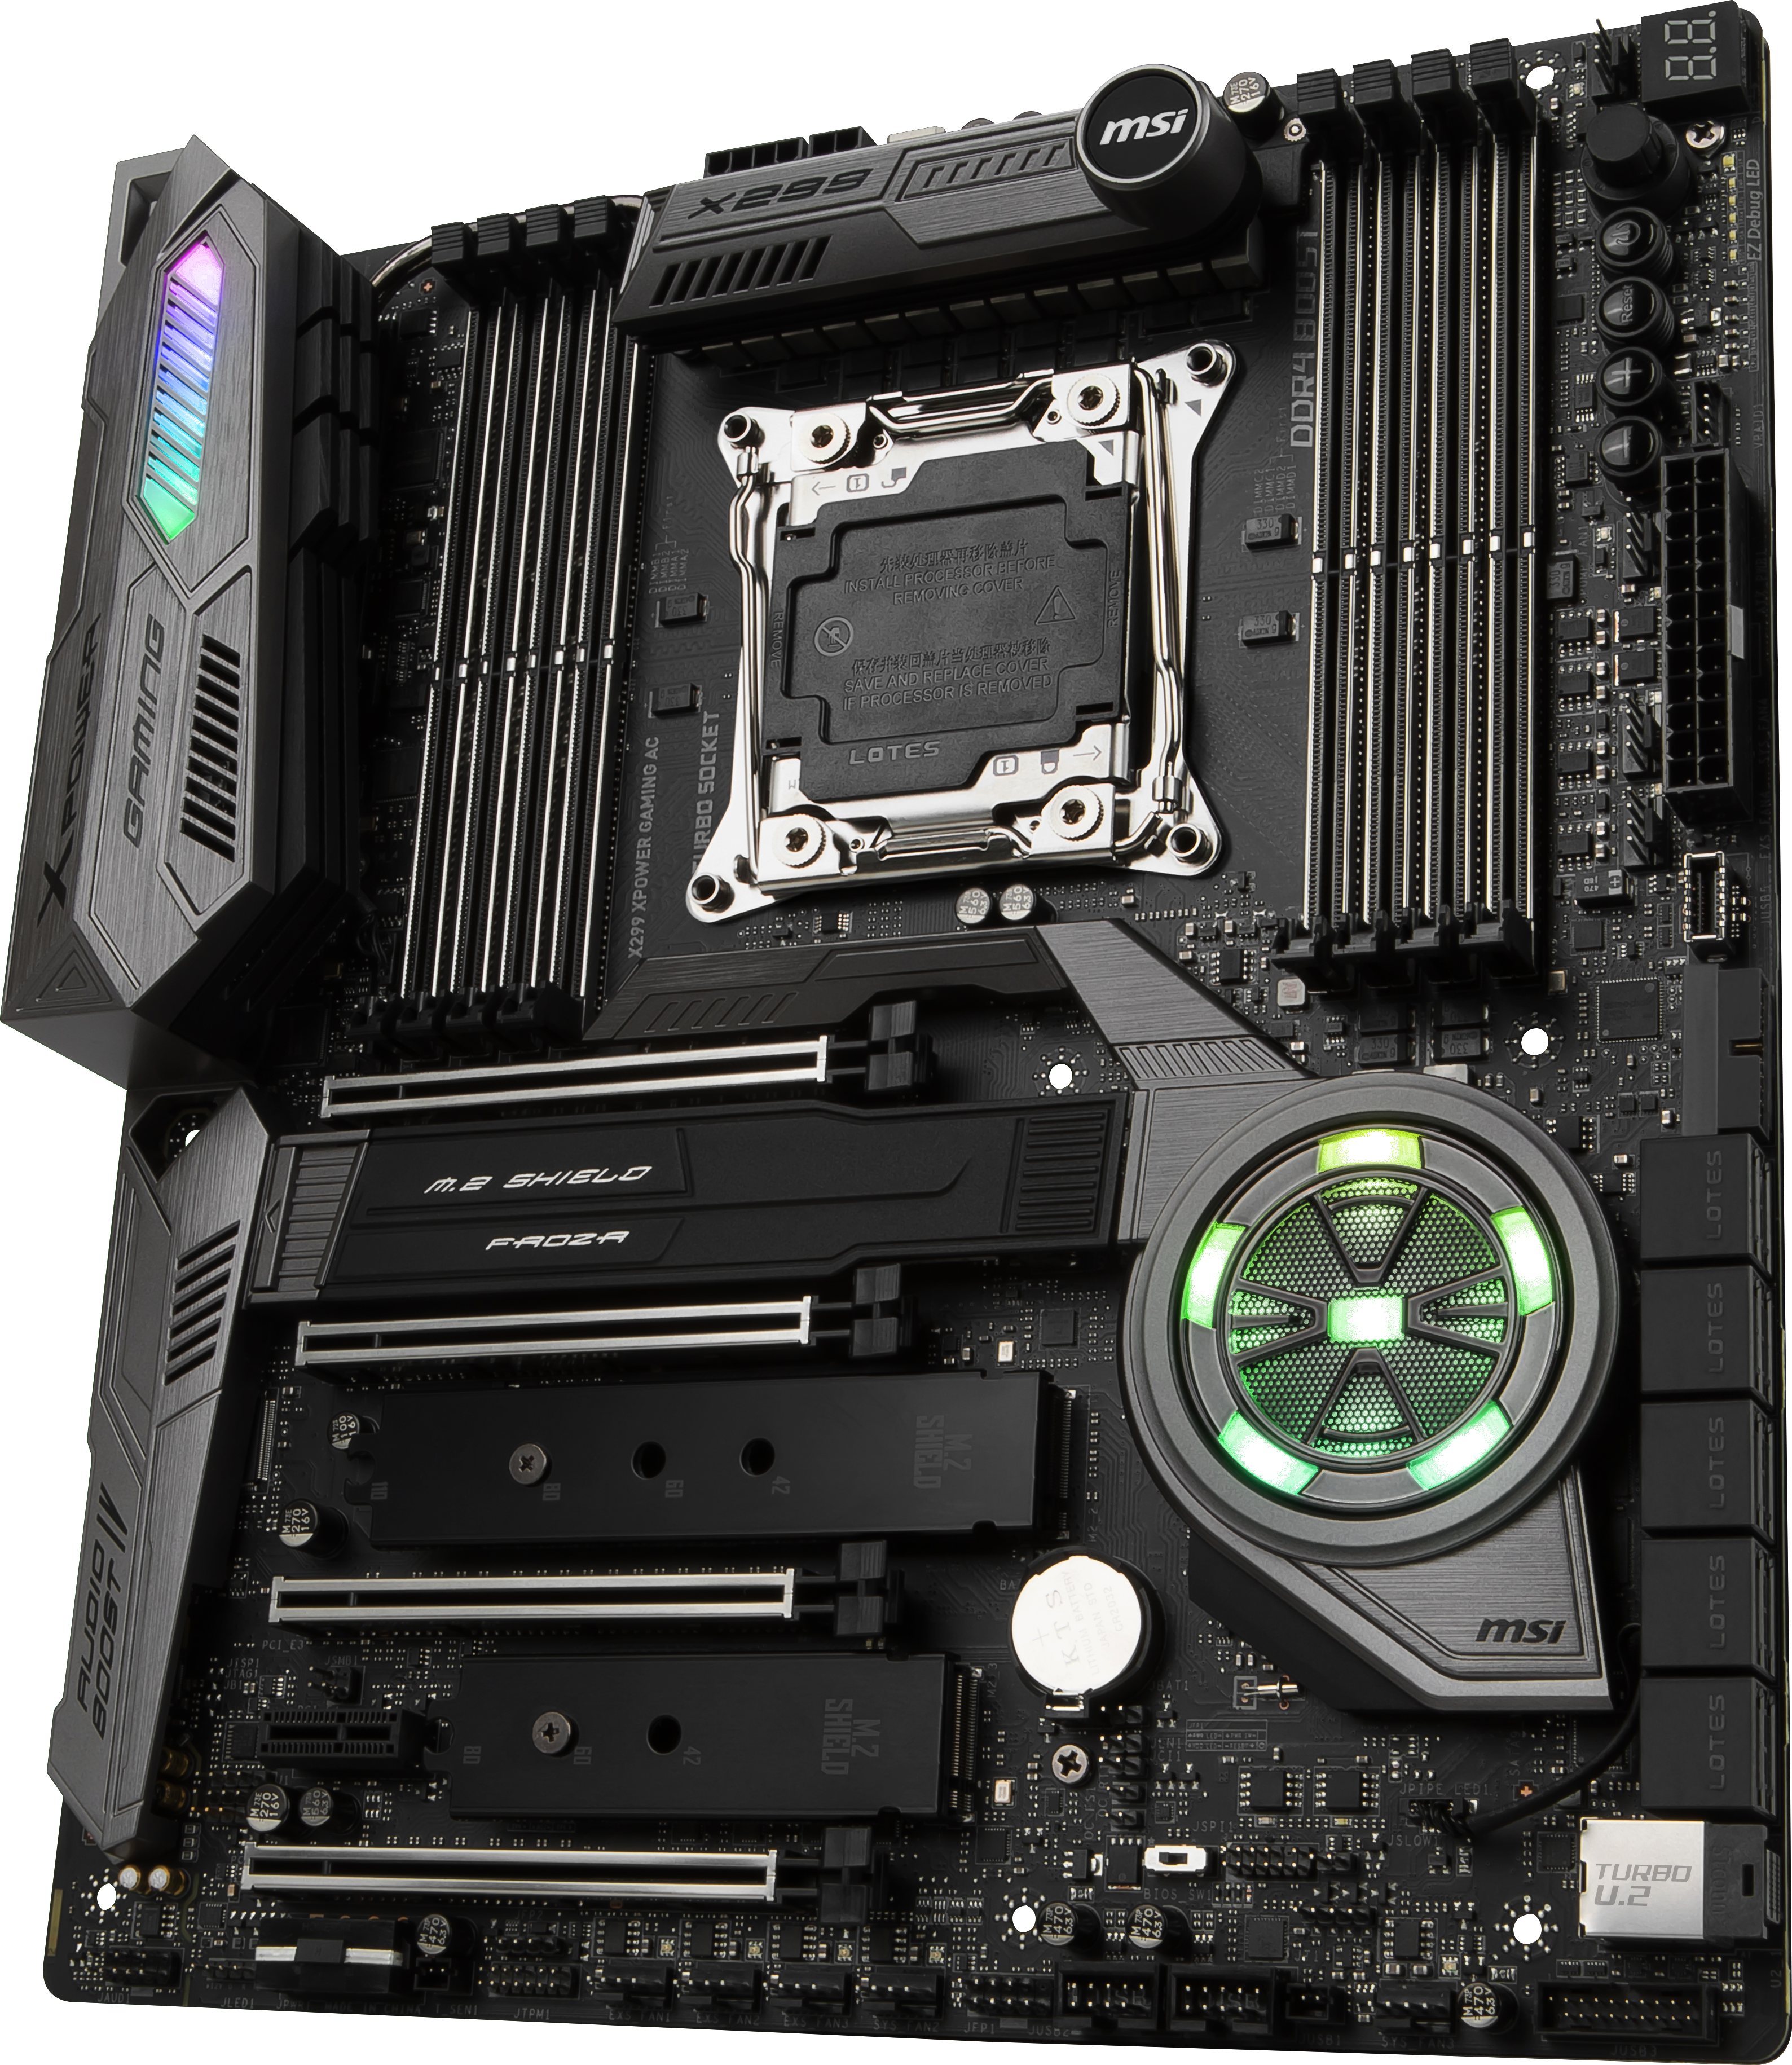 Msi Announces The X299 Xpower Gaming Ac Motherboard Five M 2 Slots